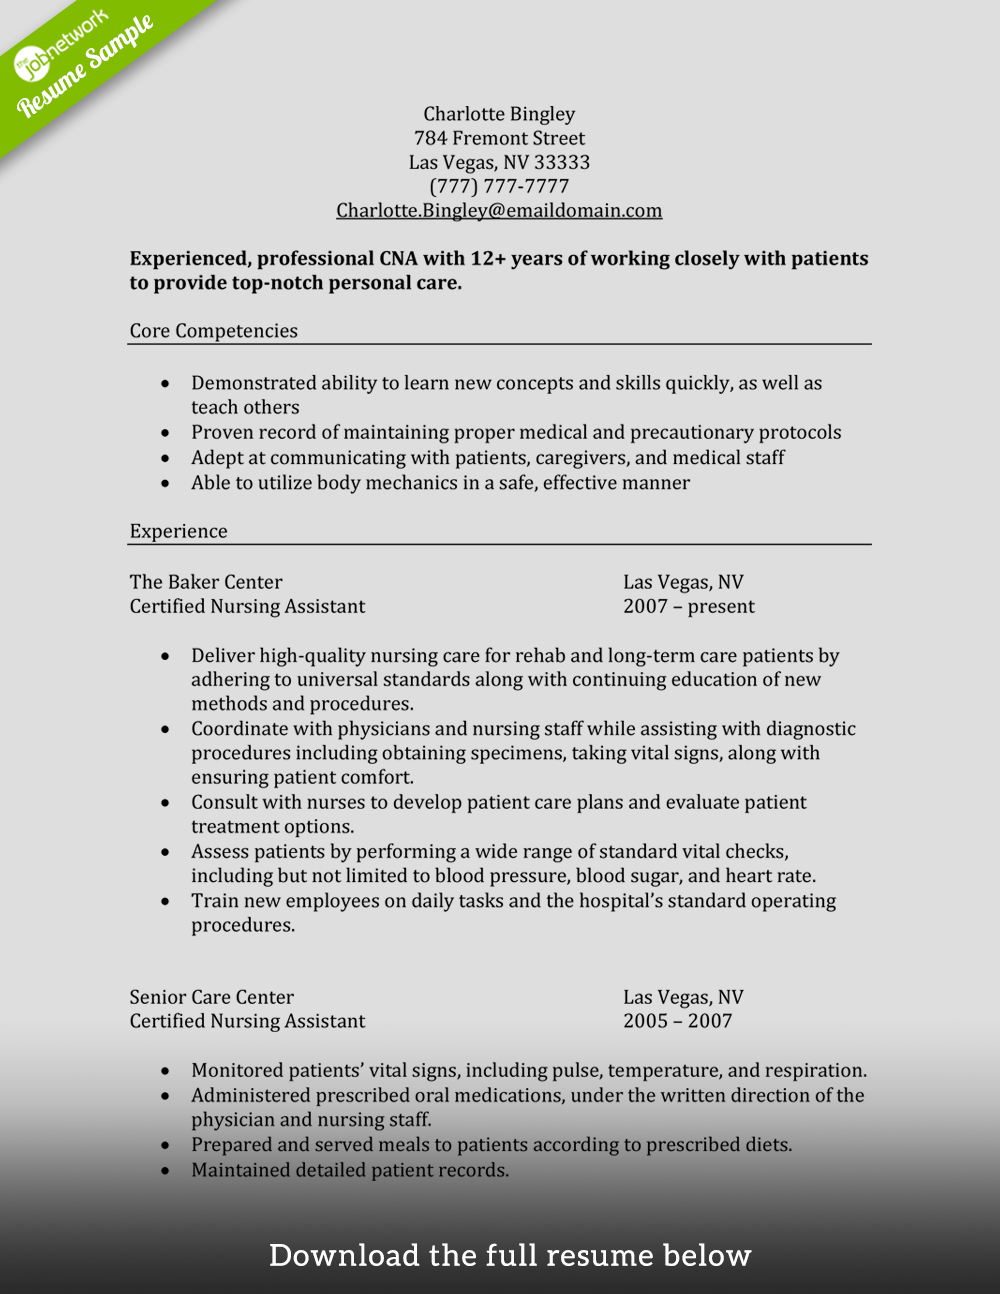 Resume Perfect Cna Resume how to write a perfect cna resume examples included experienced